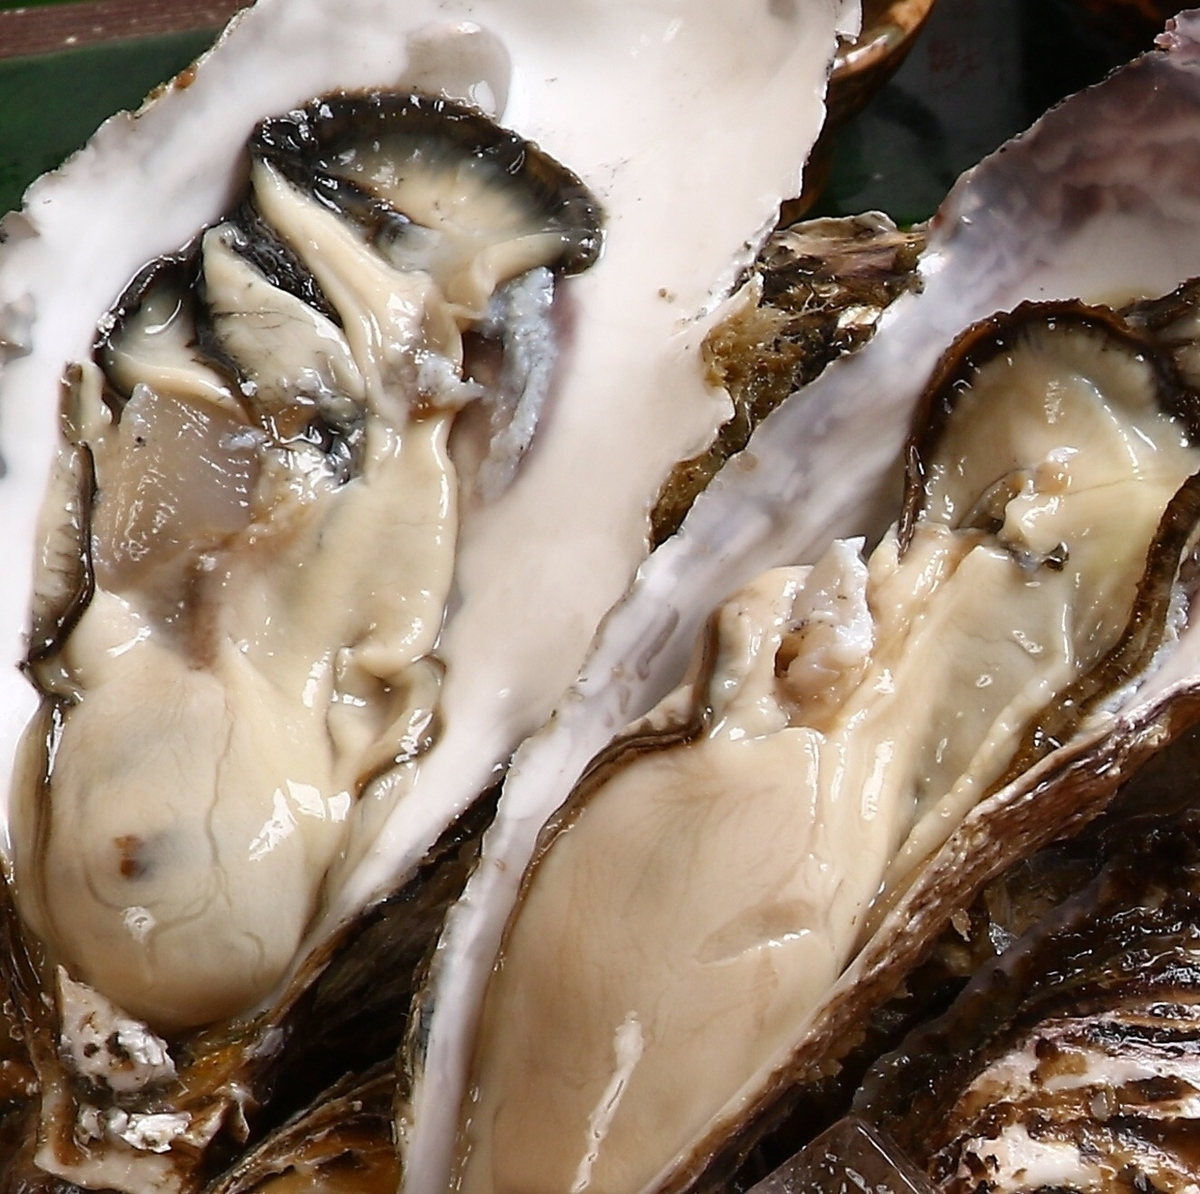 Raw oyster / baked oyster / steamed oyster